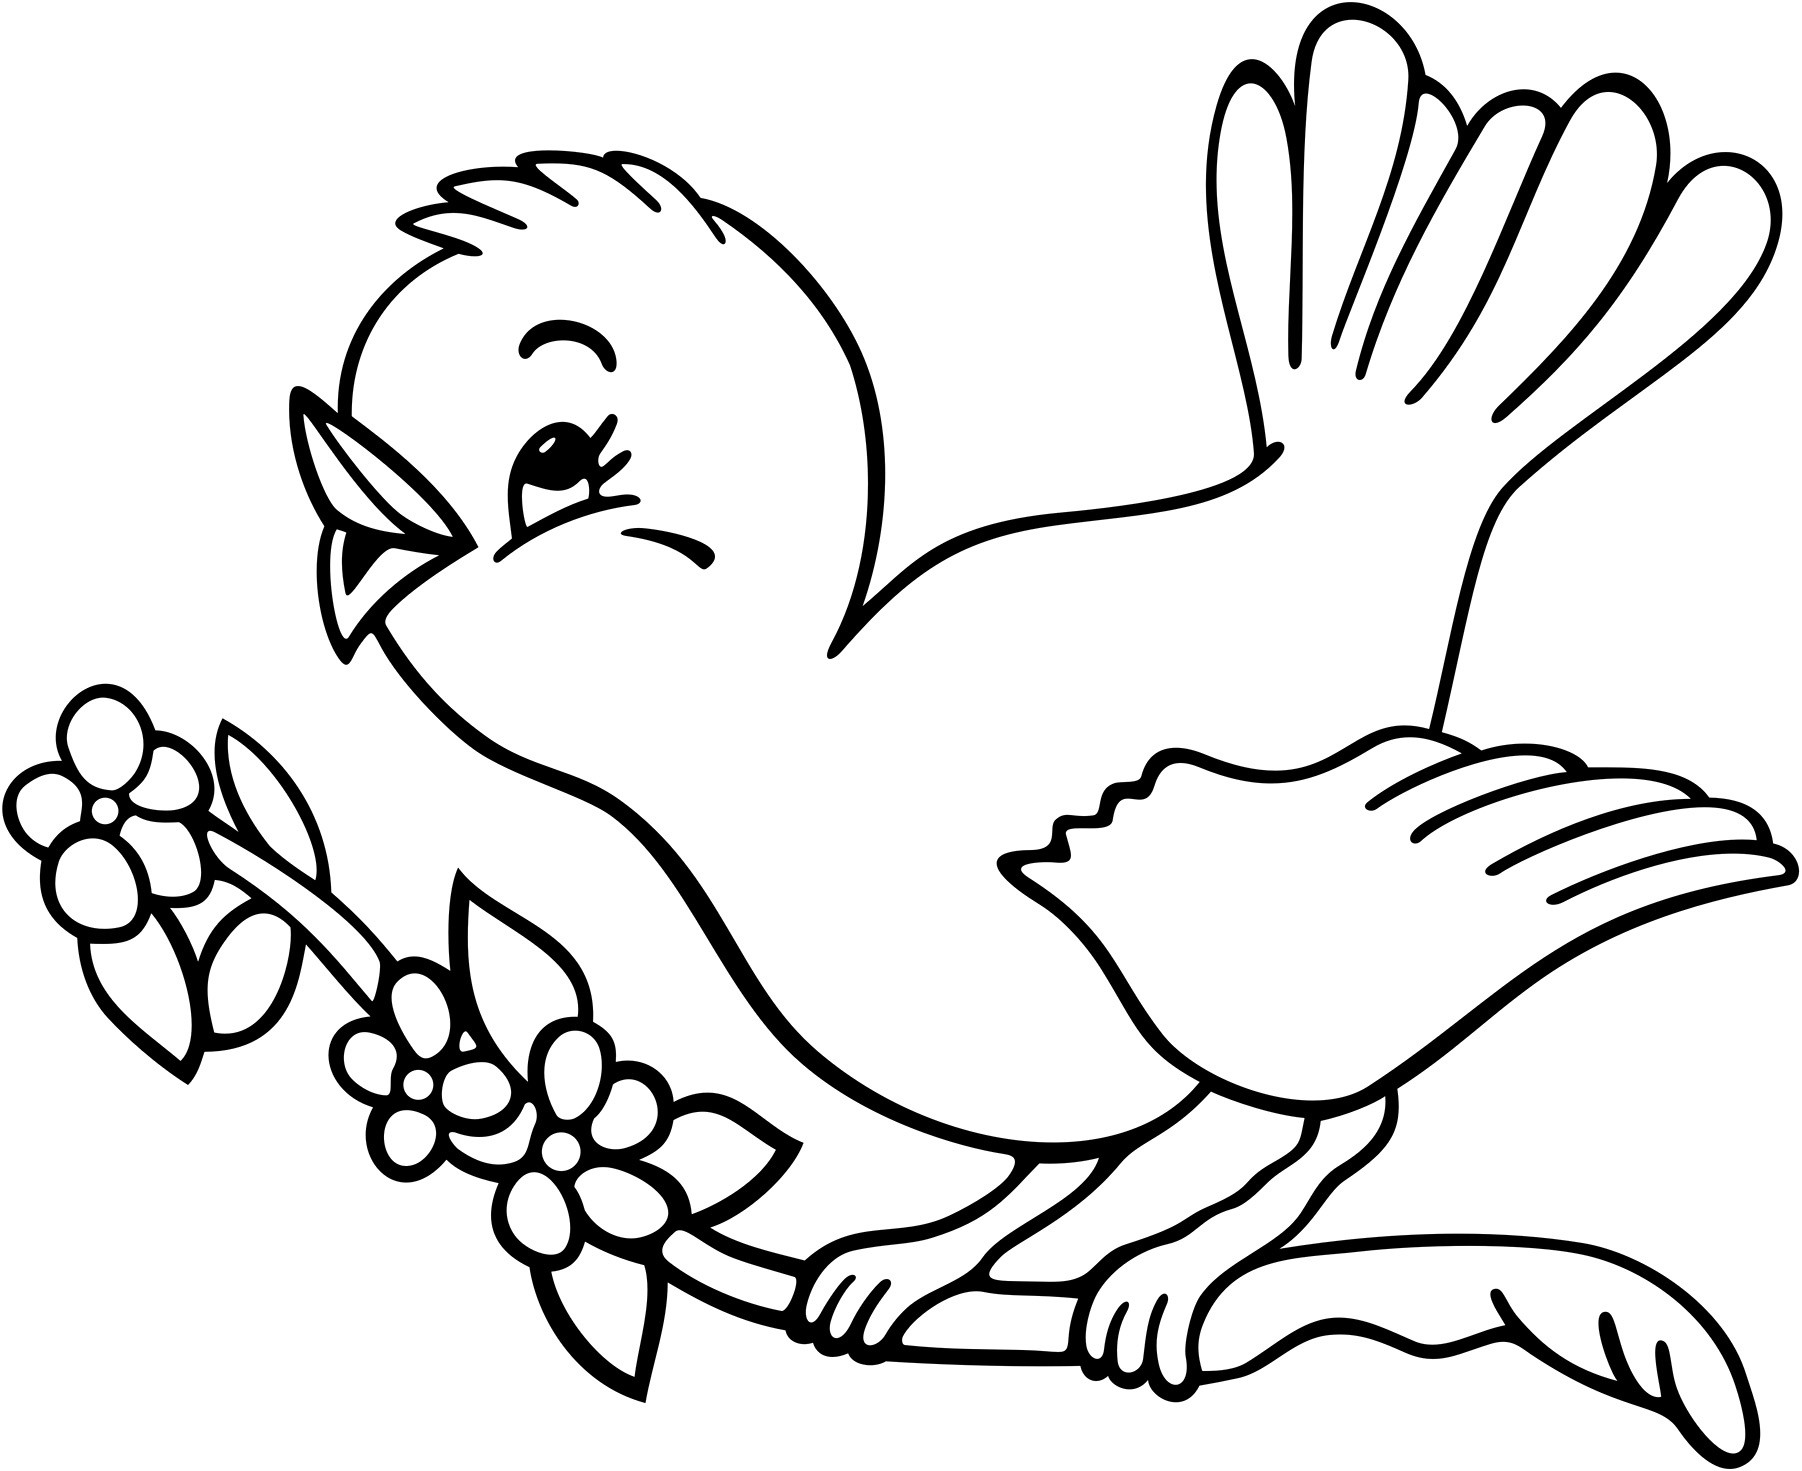 1802x1471 Cute Tweety Bird Coloring Pages For Kids Beautiful Bird Coloring